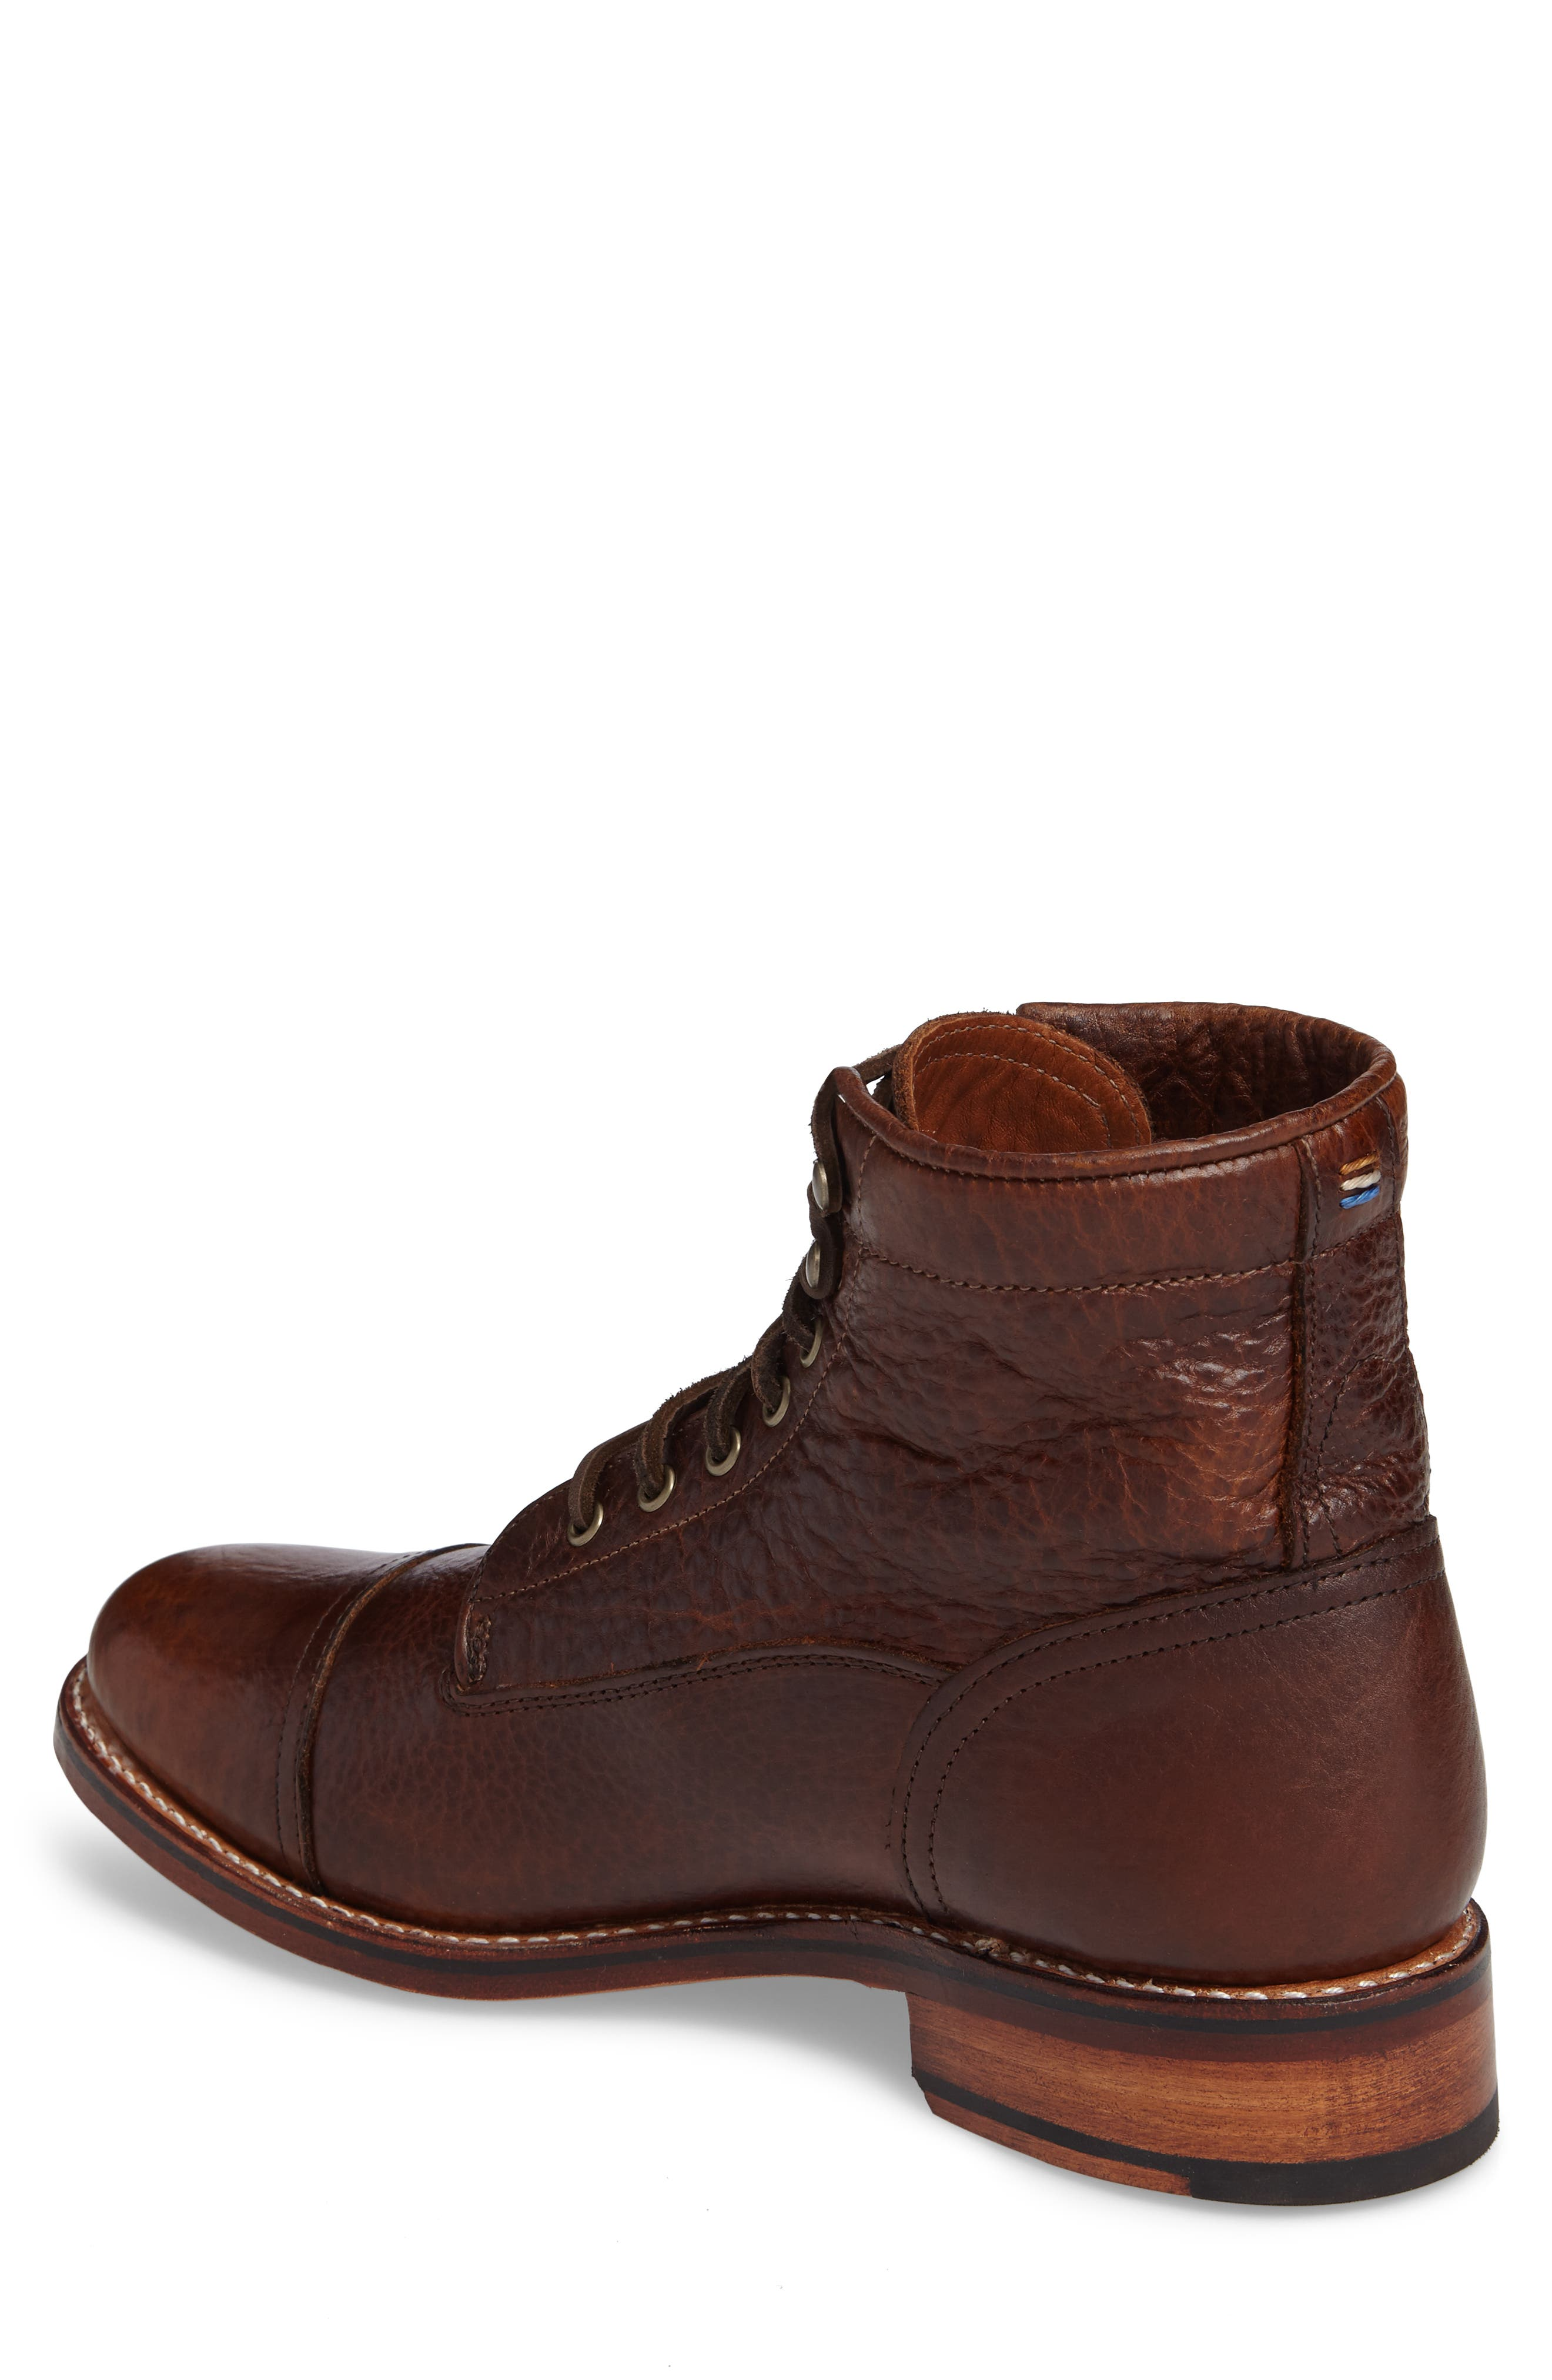 Ariat Highlands Cap Toe Boot,                             Alternate thumbnail 2, color,